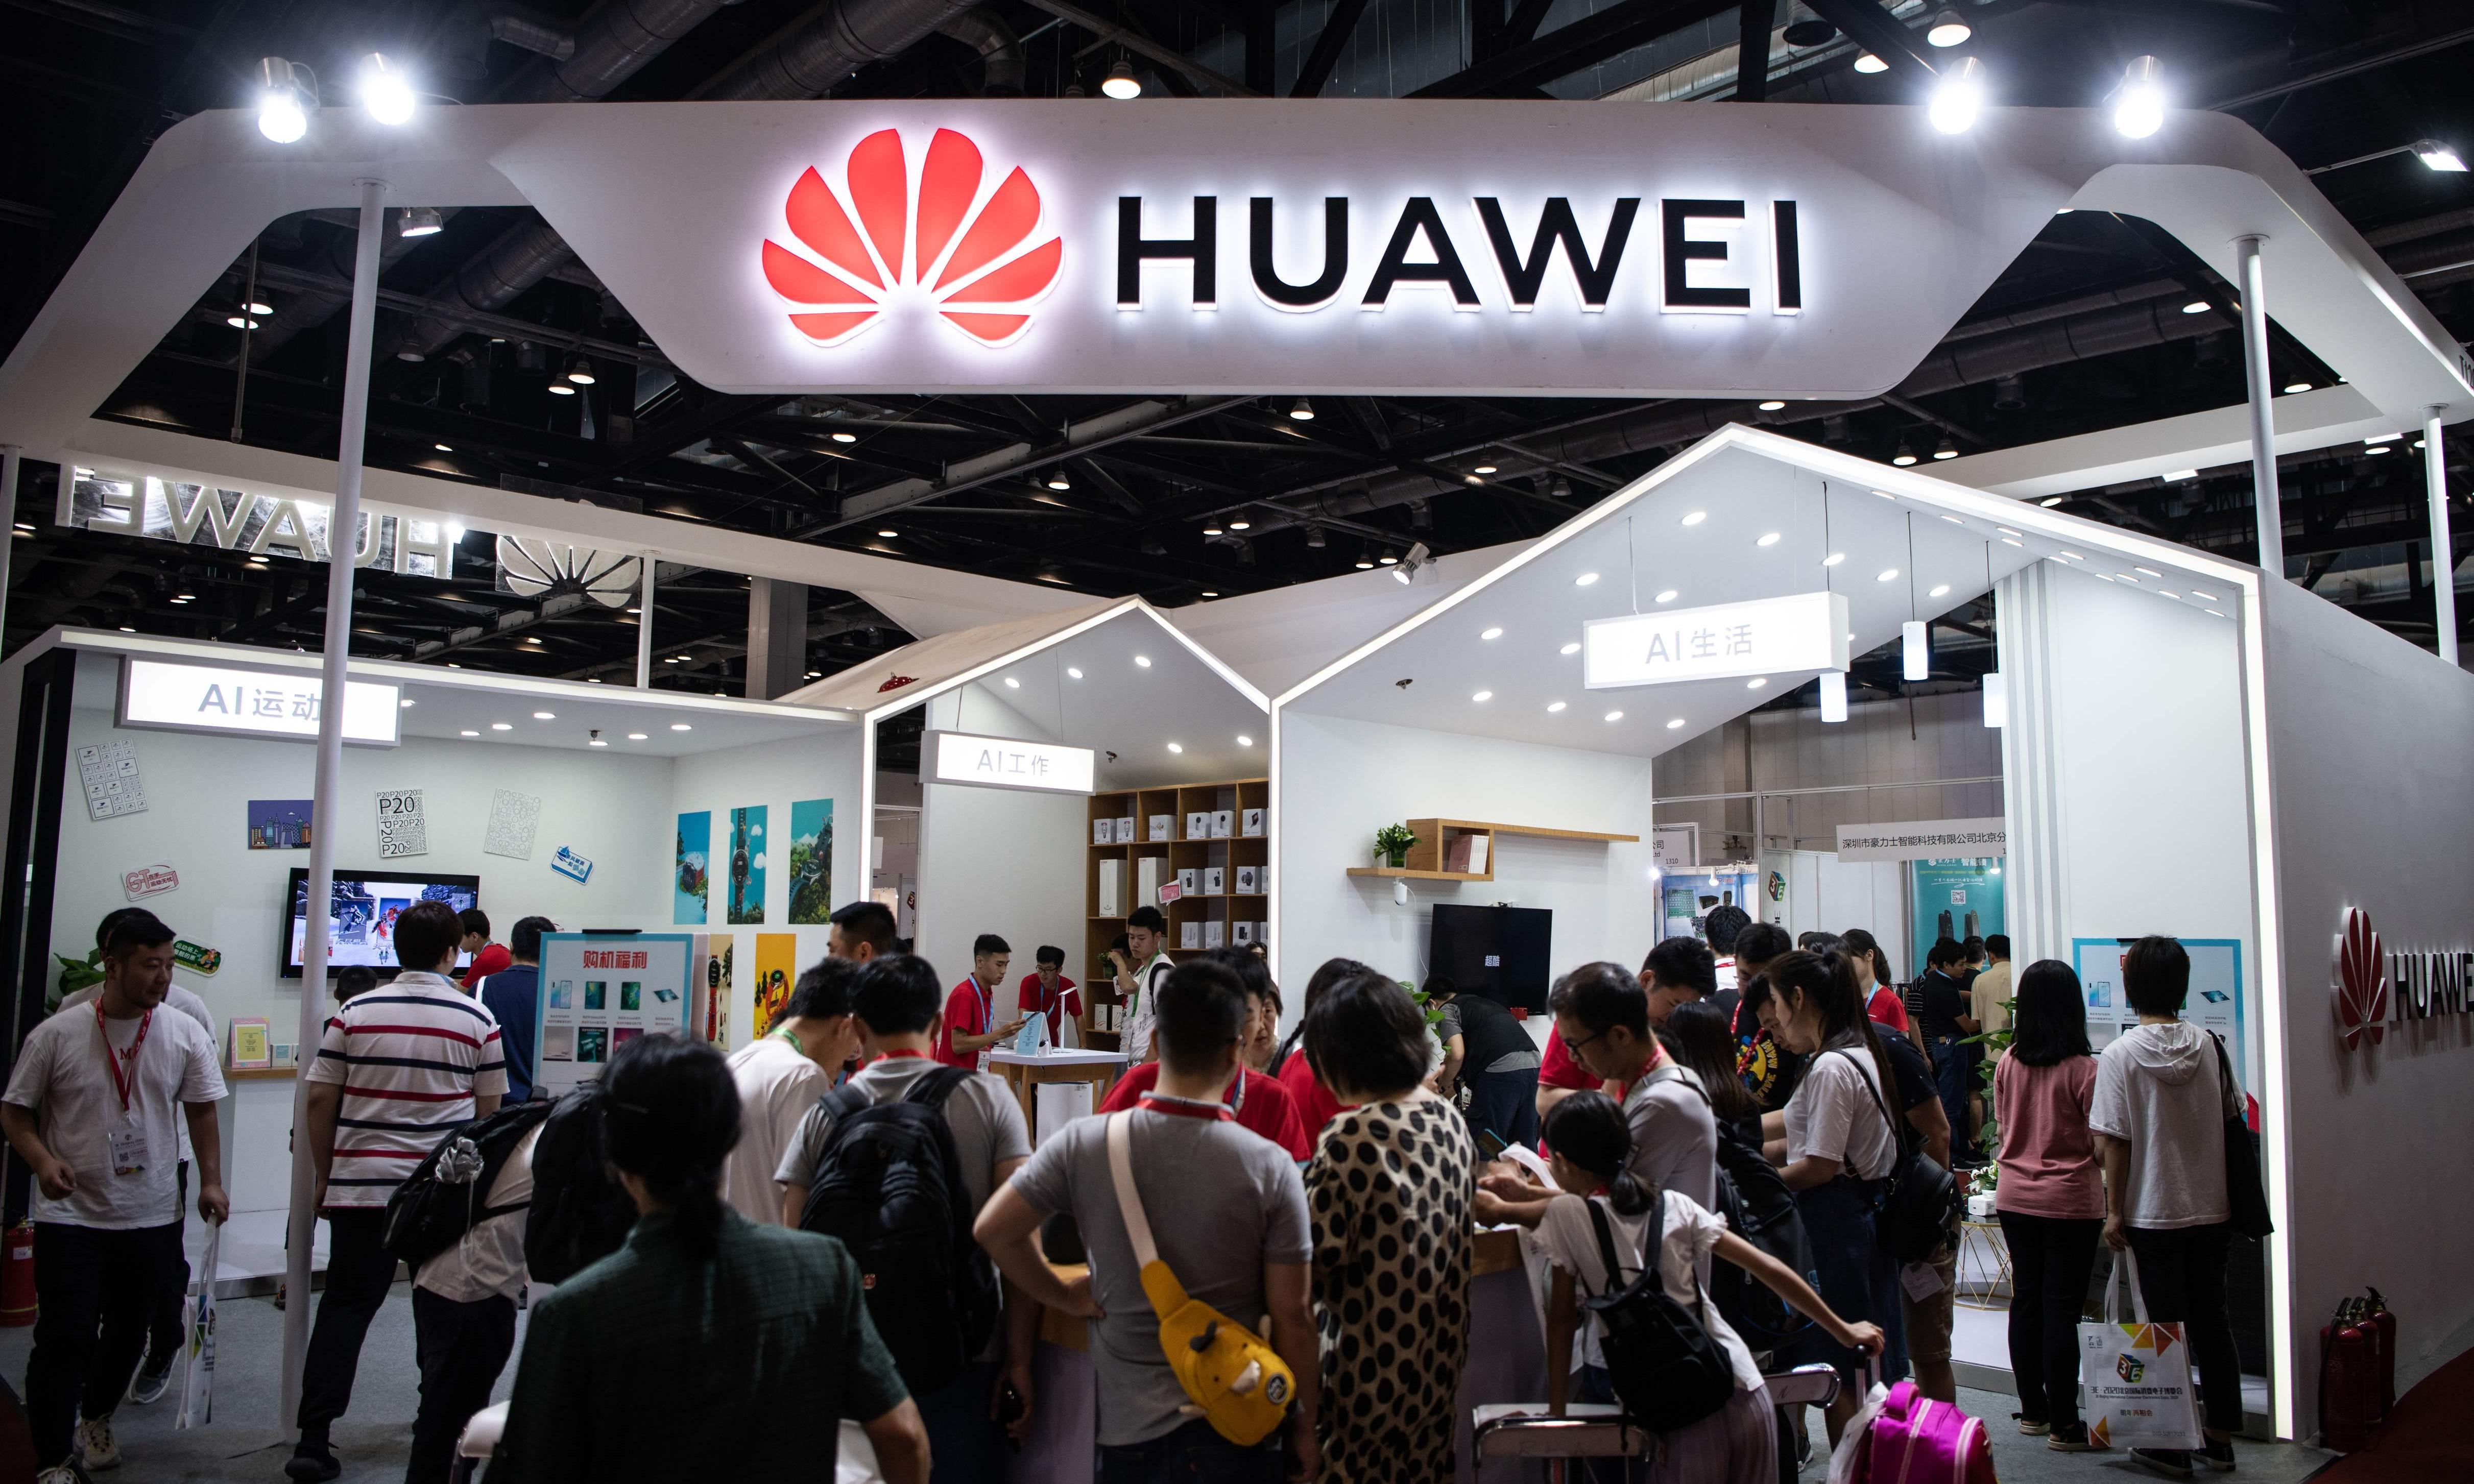 The drama surrounding Google and Huawei's new phone – explained